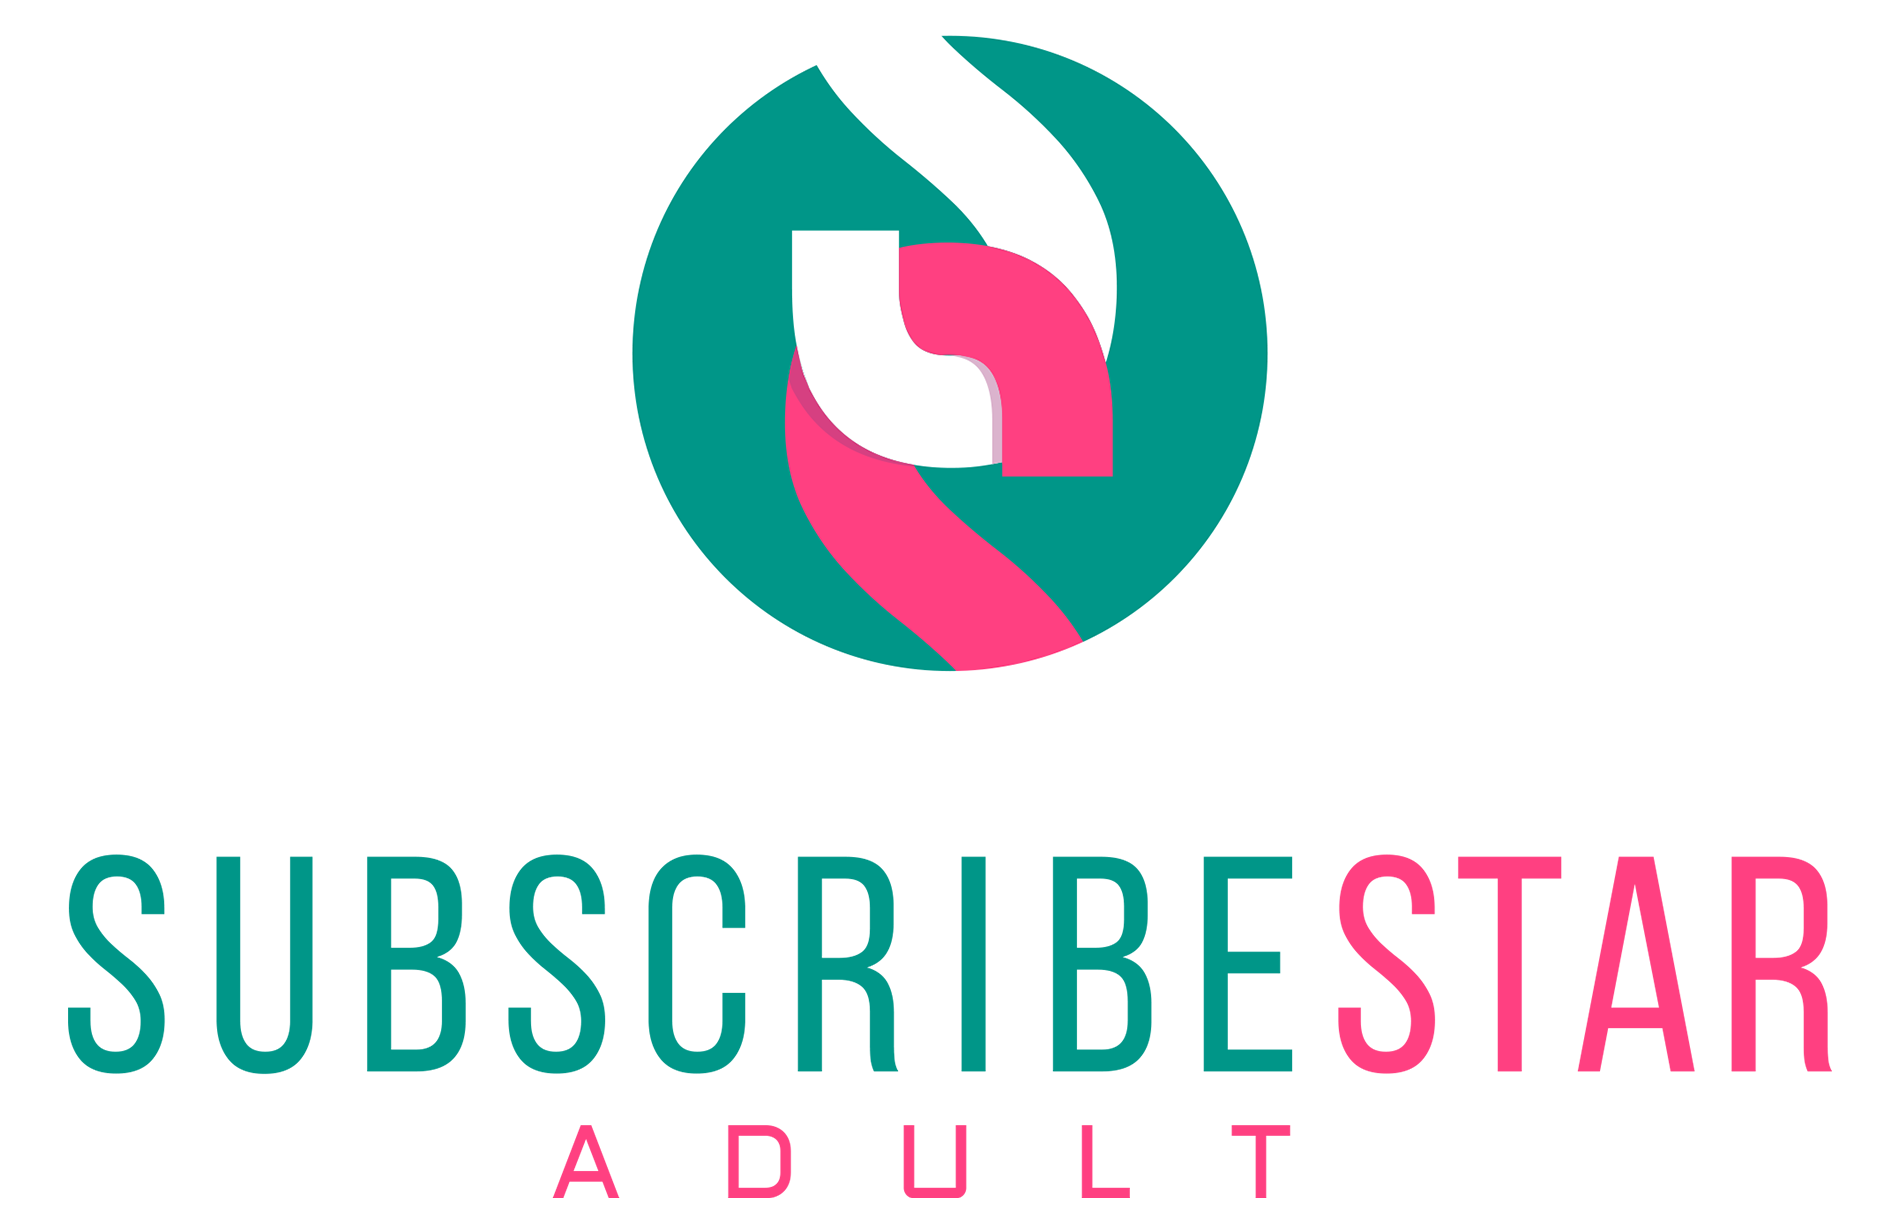 SubscribeStar Adult Stacked Combination Mark